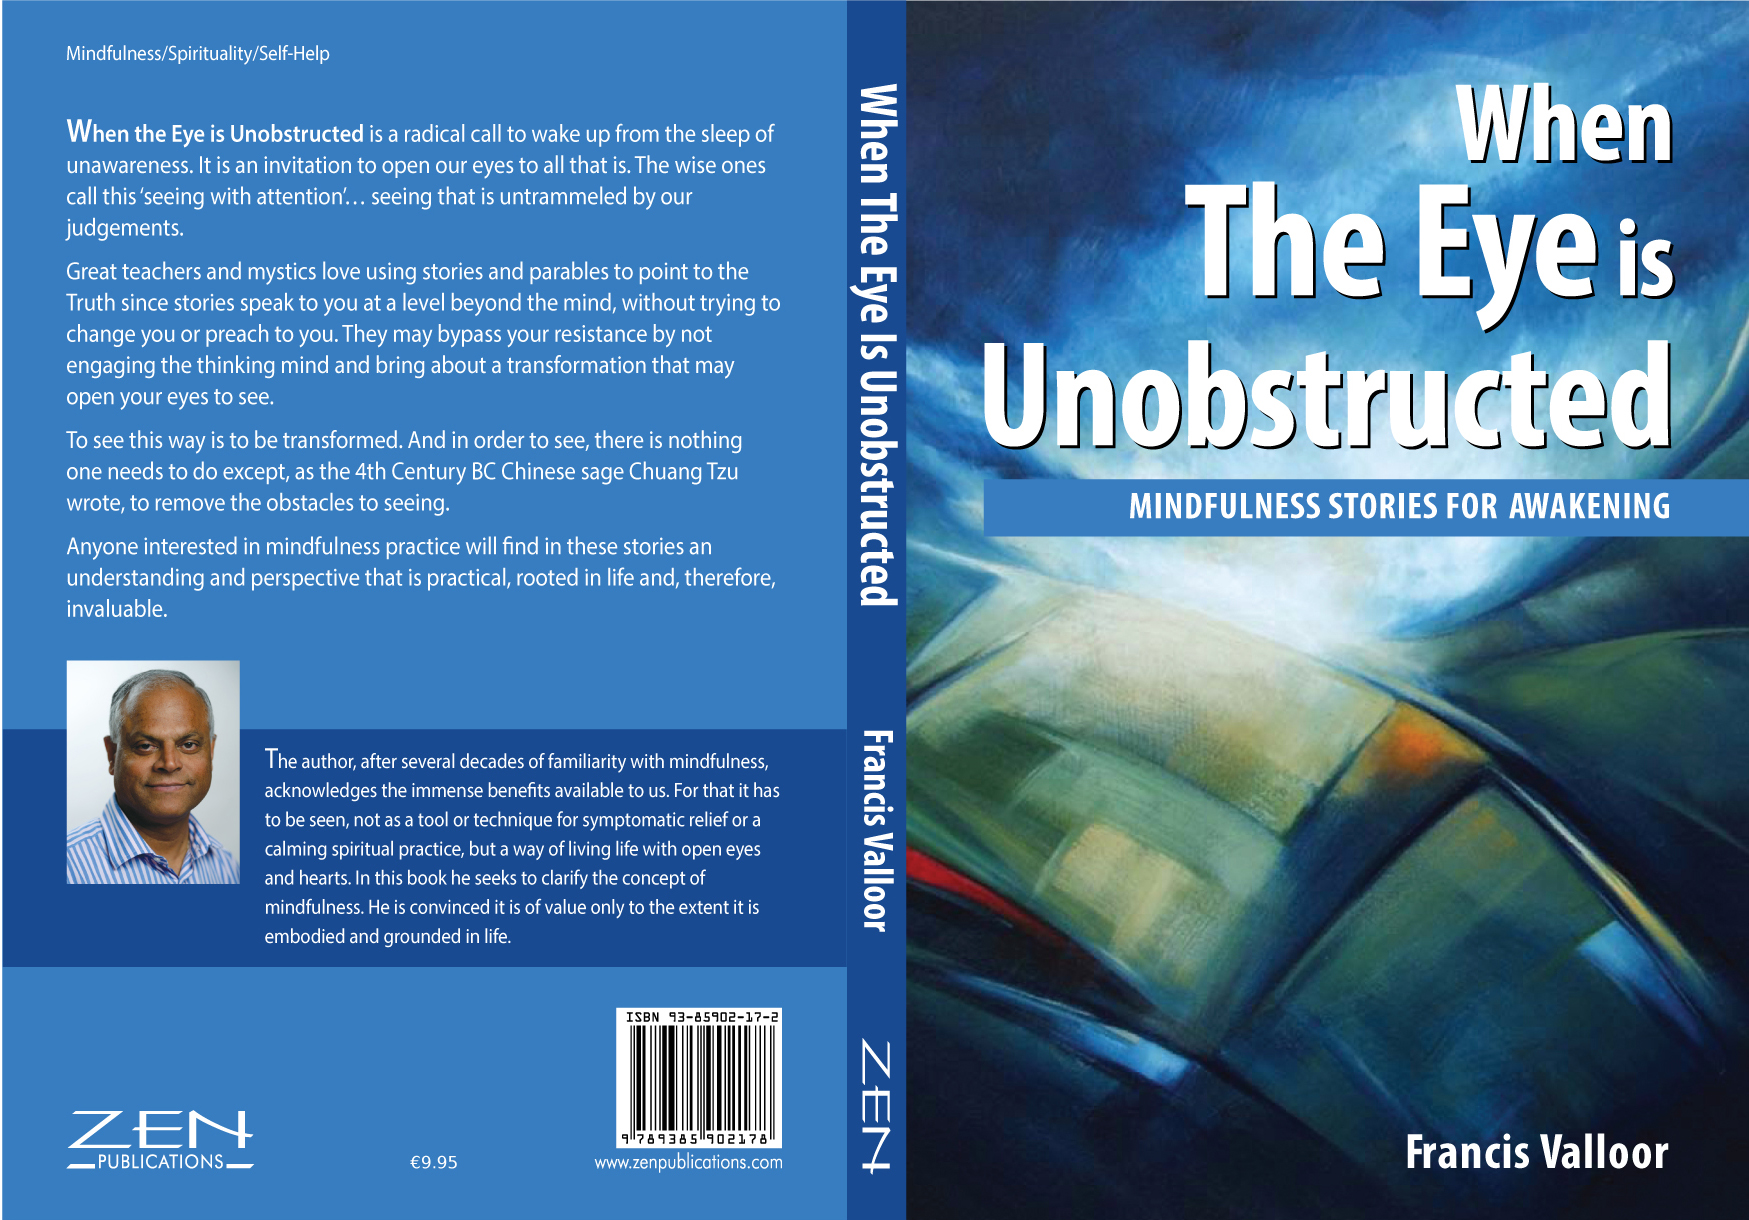 When-the-eye-is-unobstructed